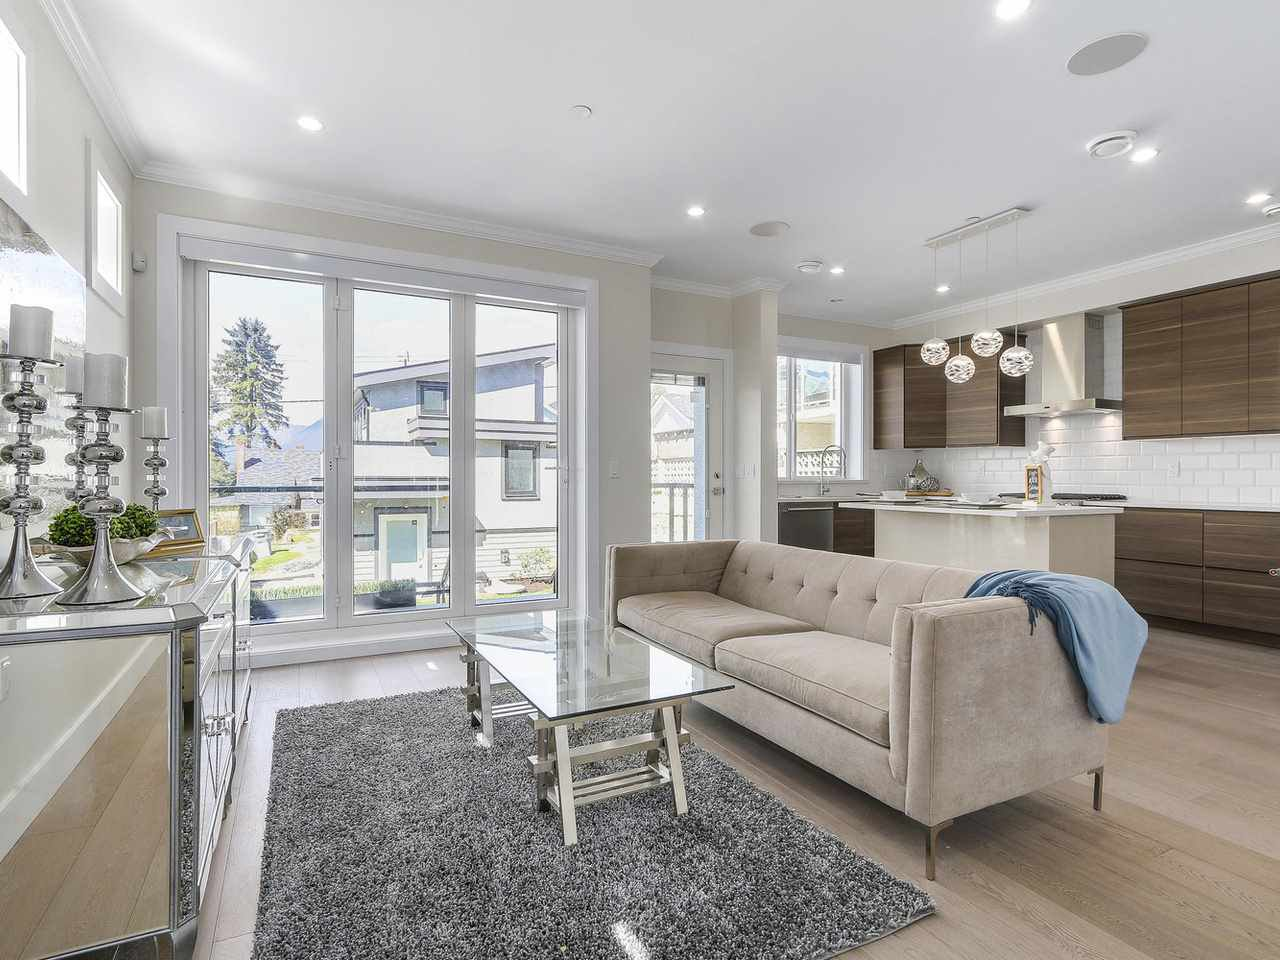 Photo 6: Photos: 3539 ETON STREET in Vancouver: Hastings East House for sale (Vancouver East)  : MLS®# R2159493